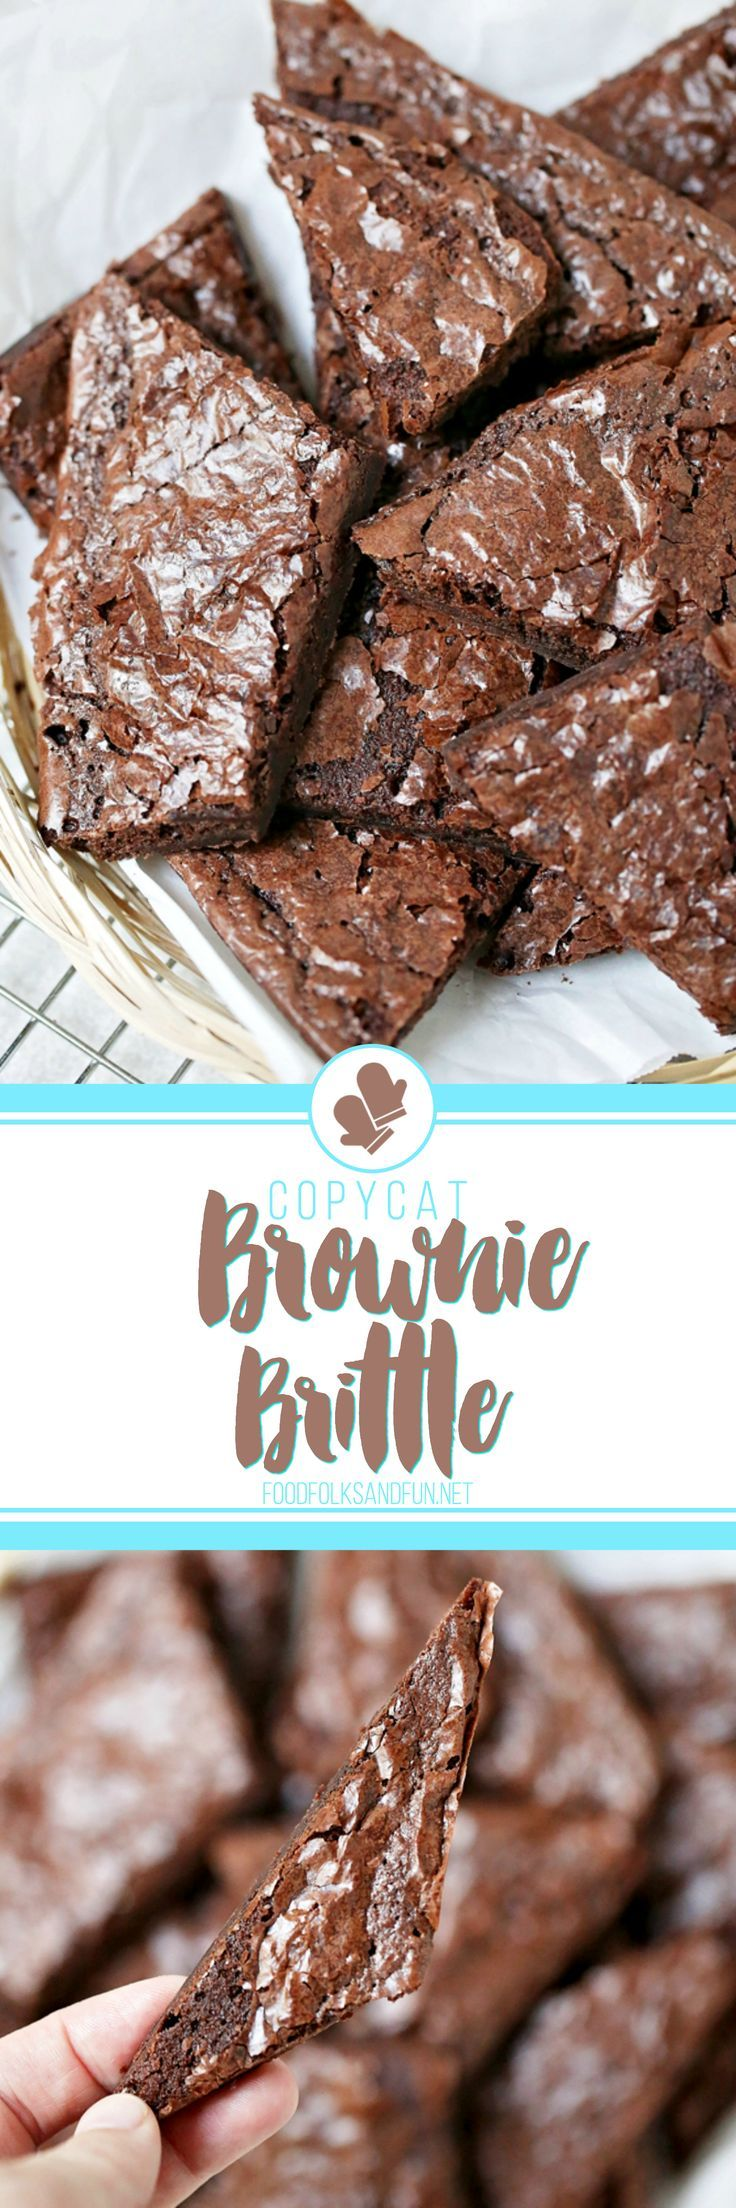 Copycat Brownie Brittle Recipe that's made from a box mix for a quick and easy treat! I bet you have all of the ingredients in your pantry right now!